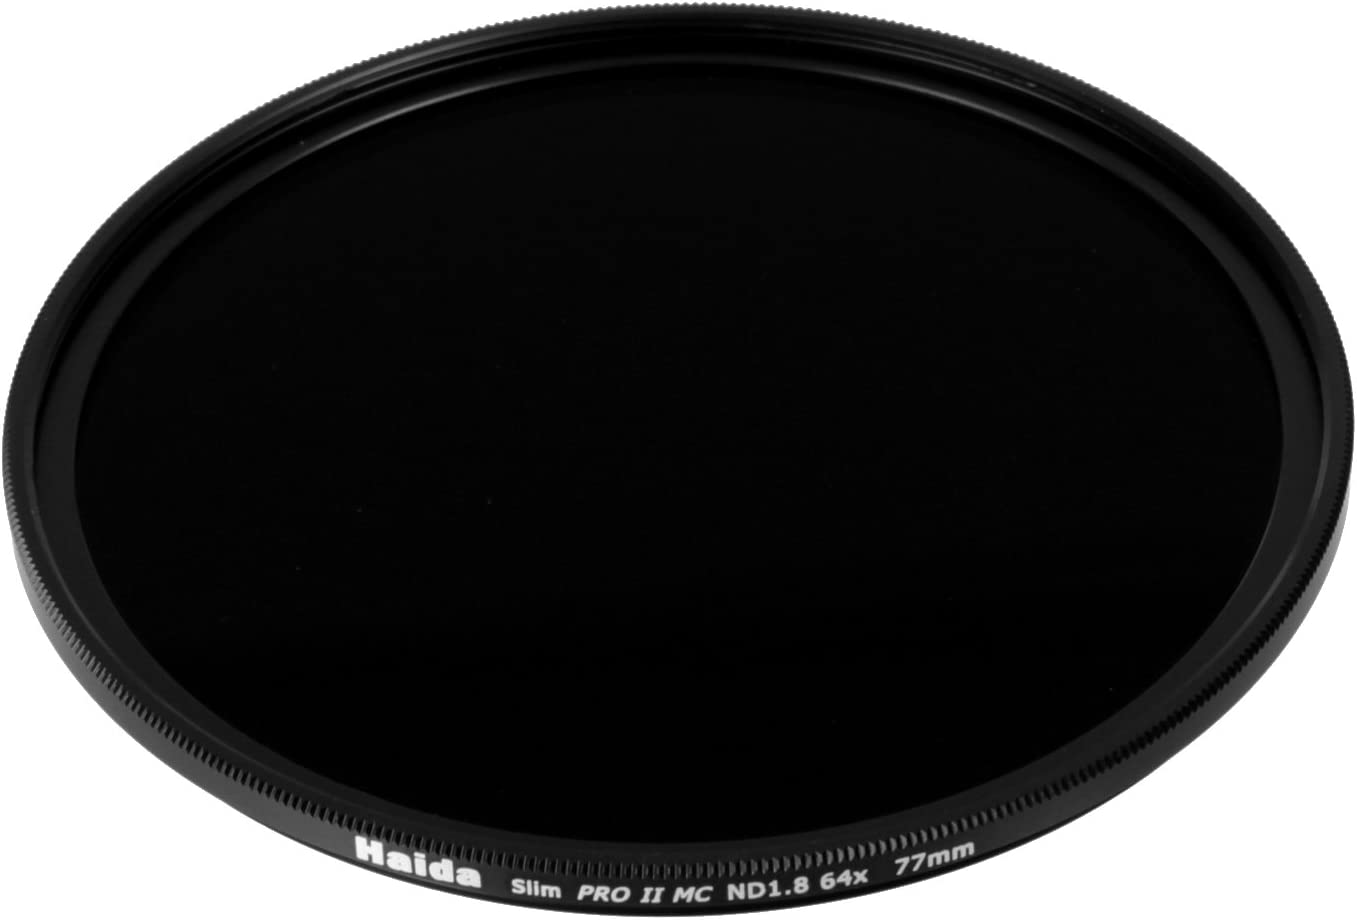 Haida 77mm Slim PROII ND64 Neutral Density Multi-Coated ND 6 Stop 1.8 64x Filter 77